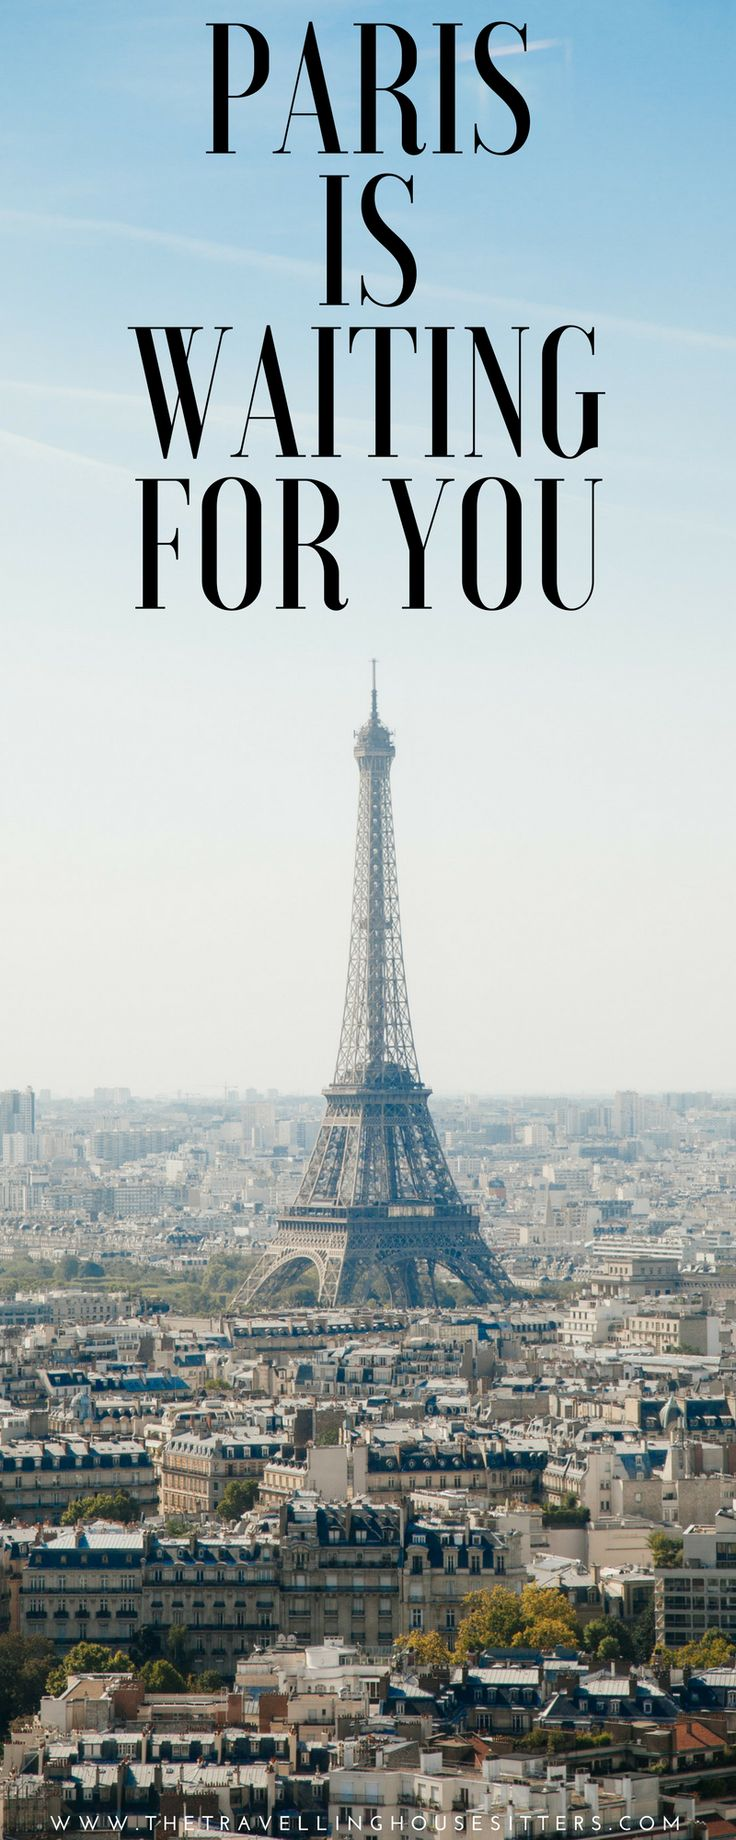 The best places to go in Paris, France|Travel France|France Travel|Paris|France|Paris France|Paris Photography|Paris photography Eiffel Tower|Eiffel Tower #Paris #France #oui